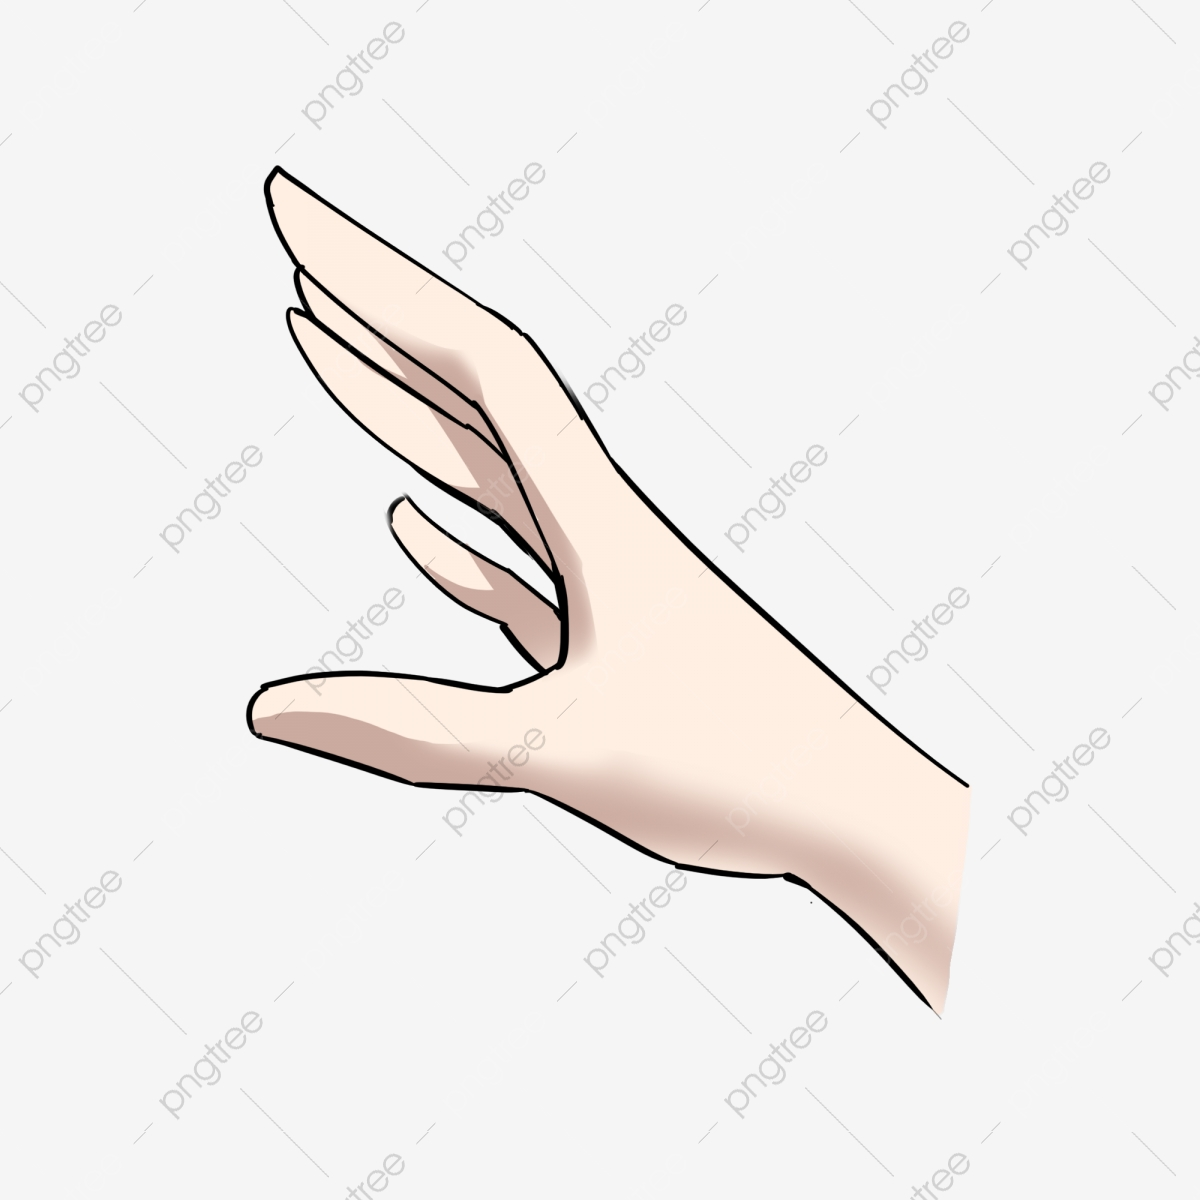 Side Palm Of The Palm Of Your Hand Hand Clipart Black And White Side Palm Human Palm Png Transparent Clipart Image And Psd File For Free Download Hand gesture thumb, hands png. https pngtree com freepng side palm of the palm of your hand 4658630 html